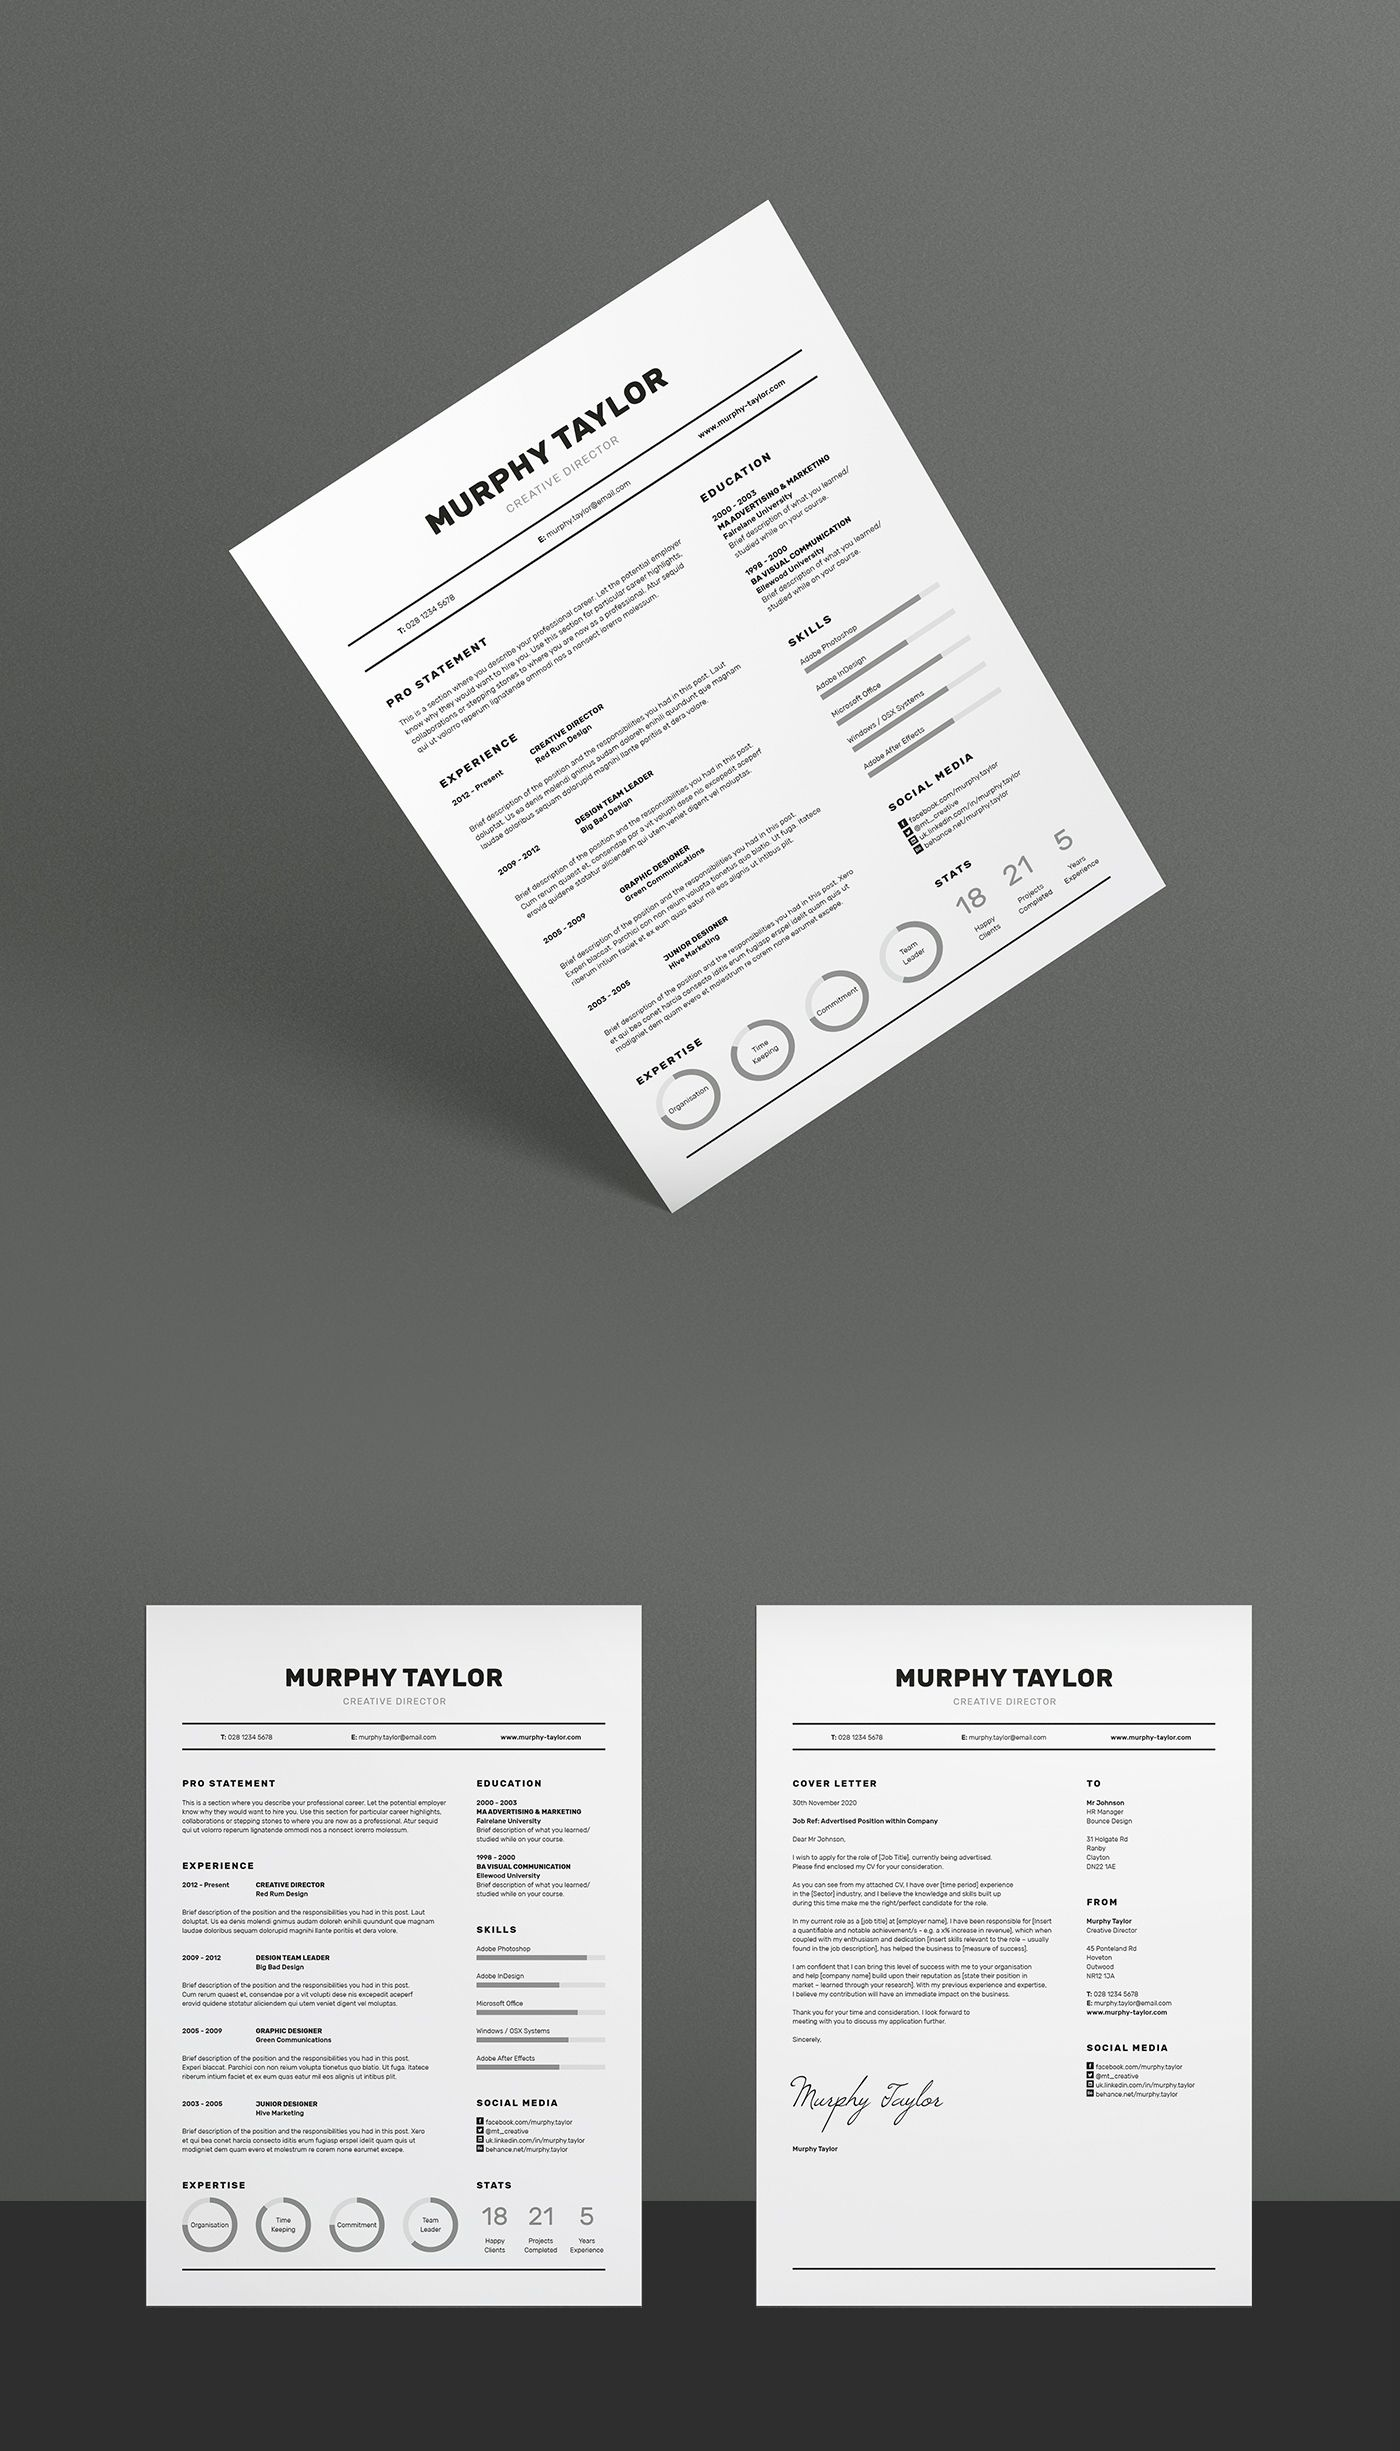 Professional Resume Template for MS Word,